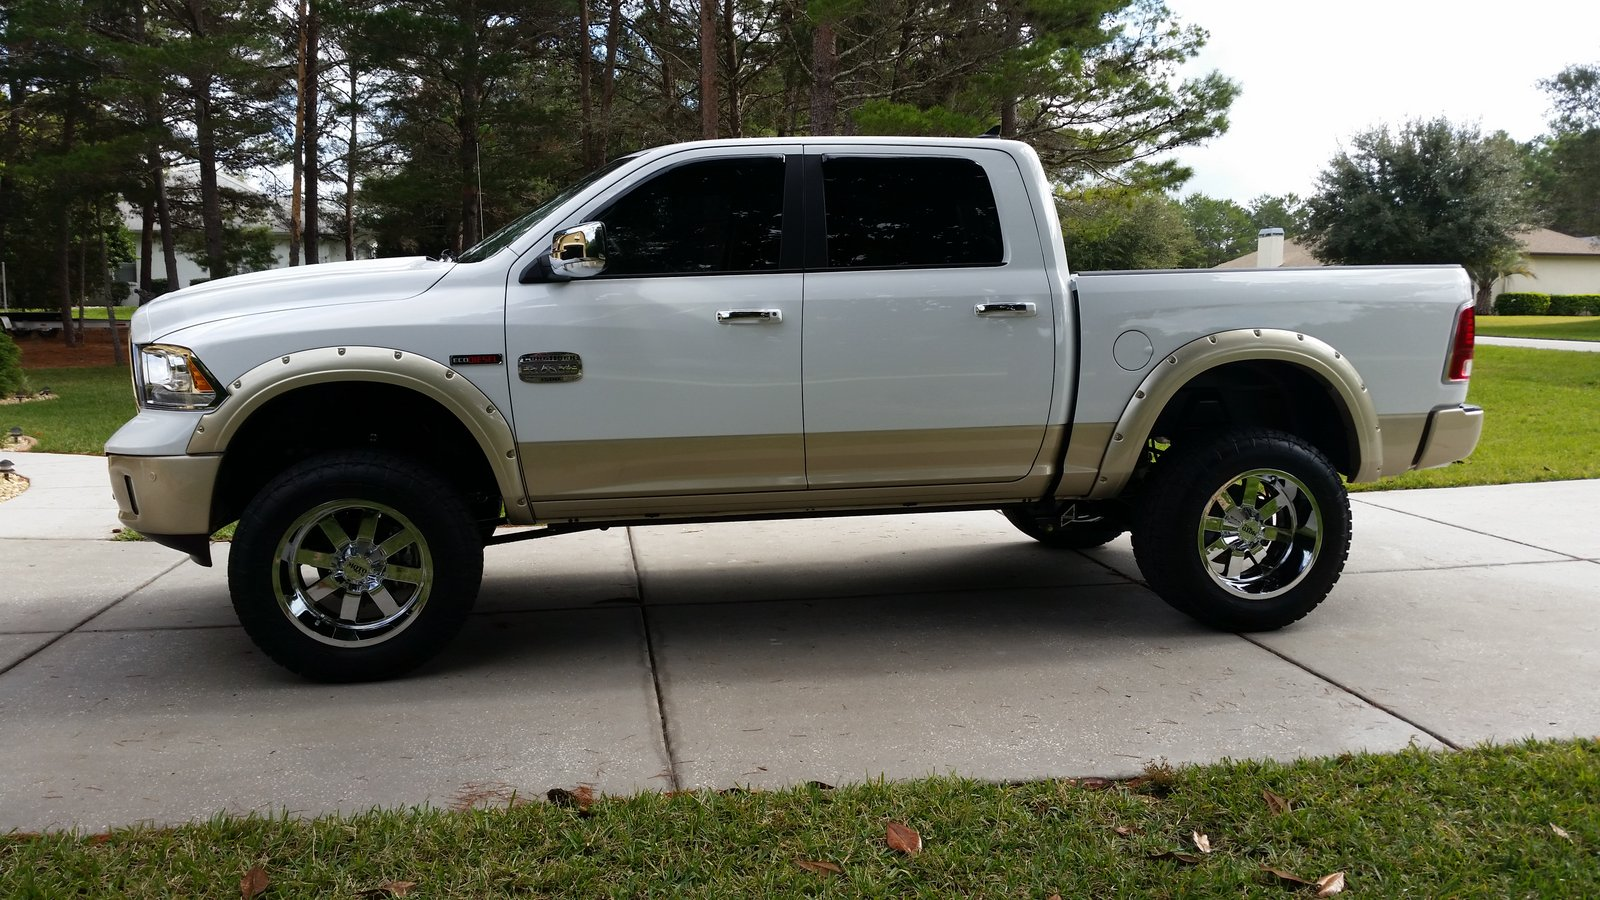 pics photos 2014 dodge ram 1500 brand new eco diesel 20 alloys in. Cars Review. Best American Auto & Cars Review